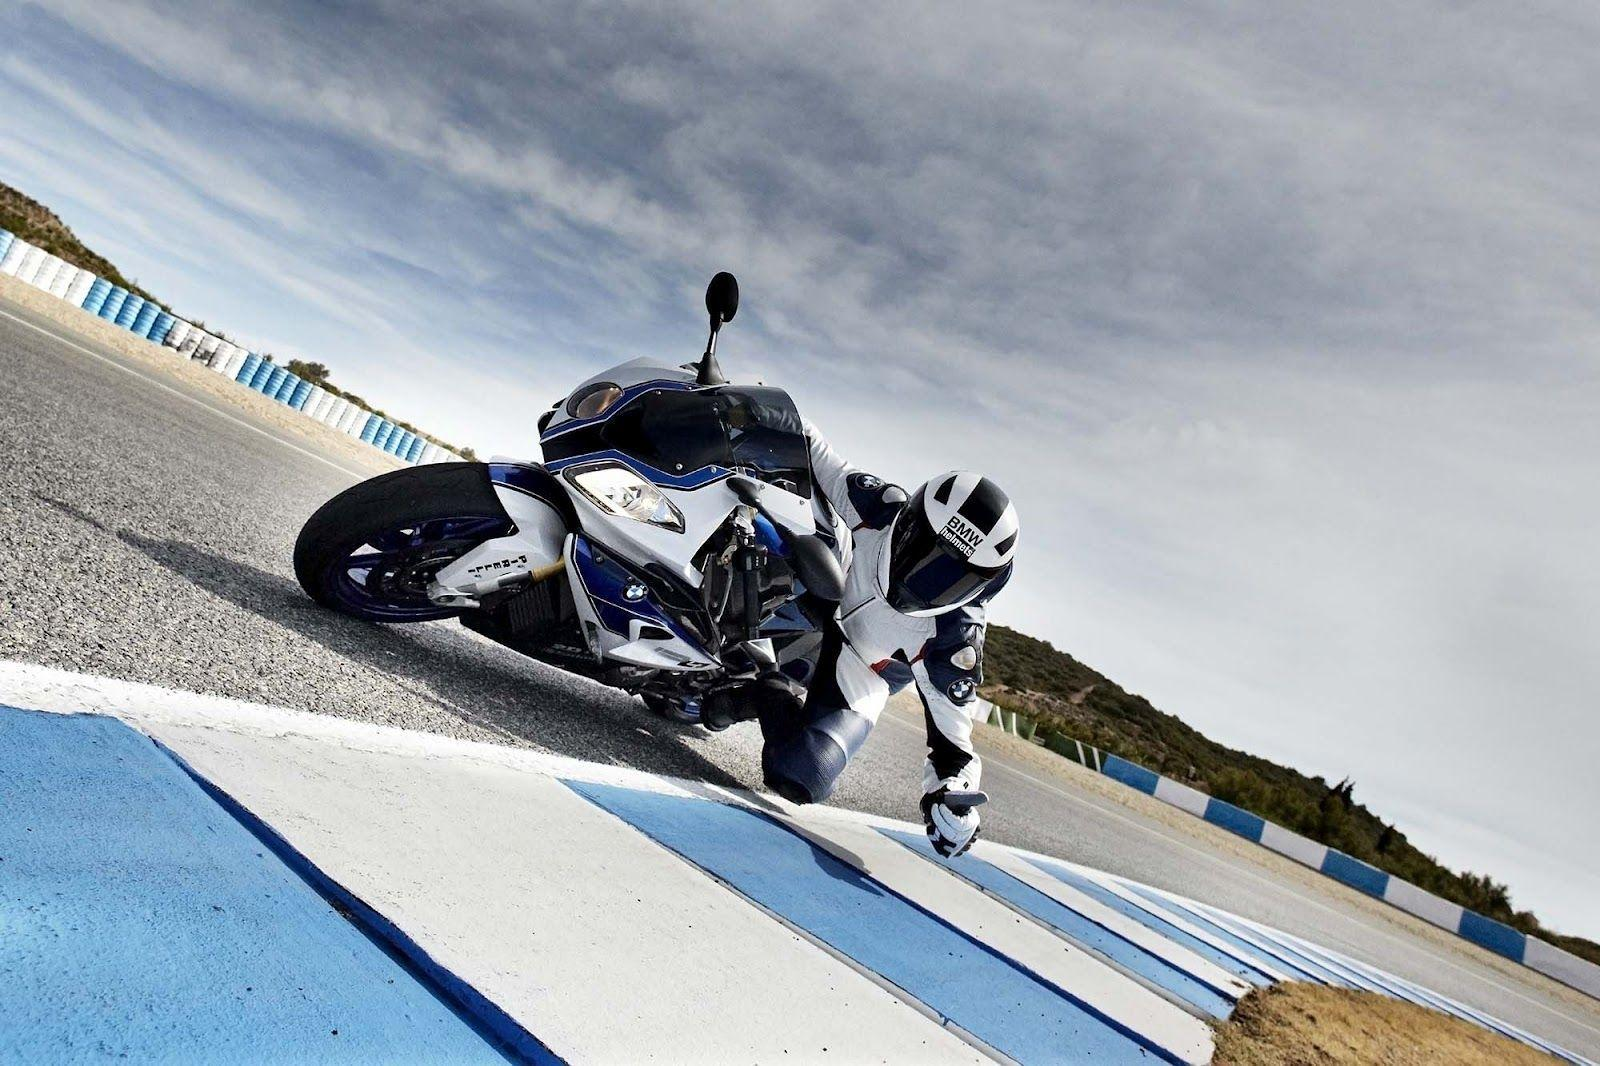 Sport Bike Wallpaper For Iphone 4: BMW S1000RR Wallpapers